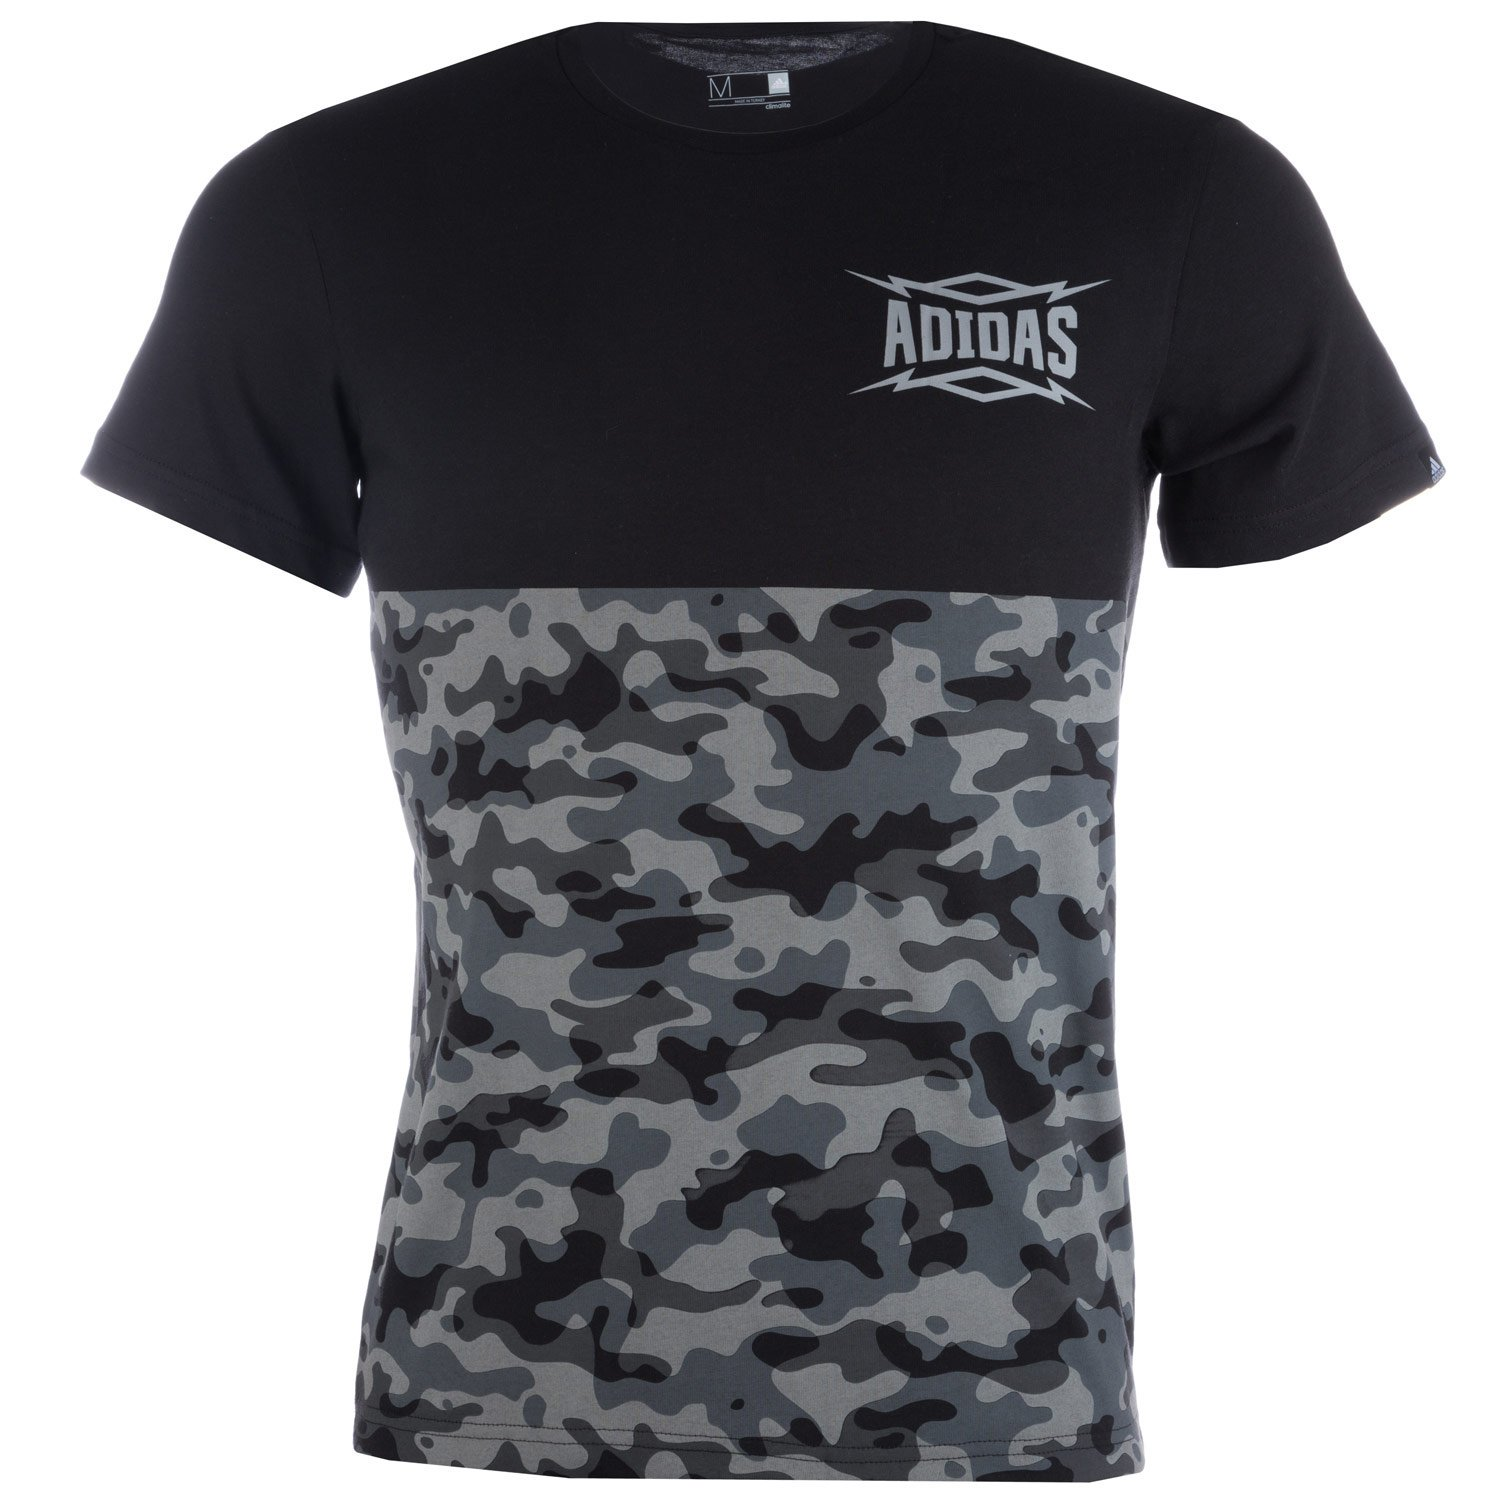 adidas - T-shirt - Homme